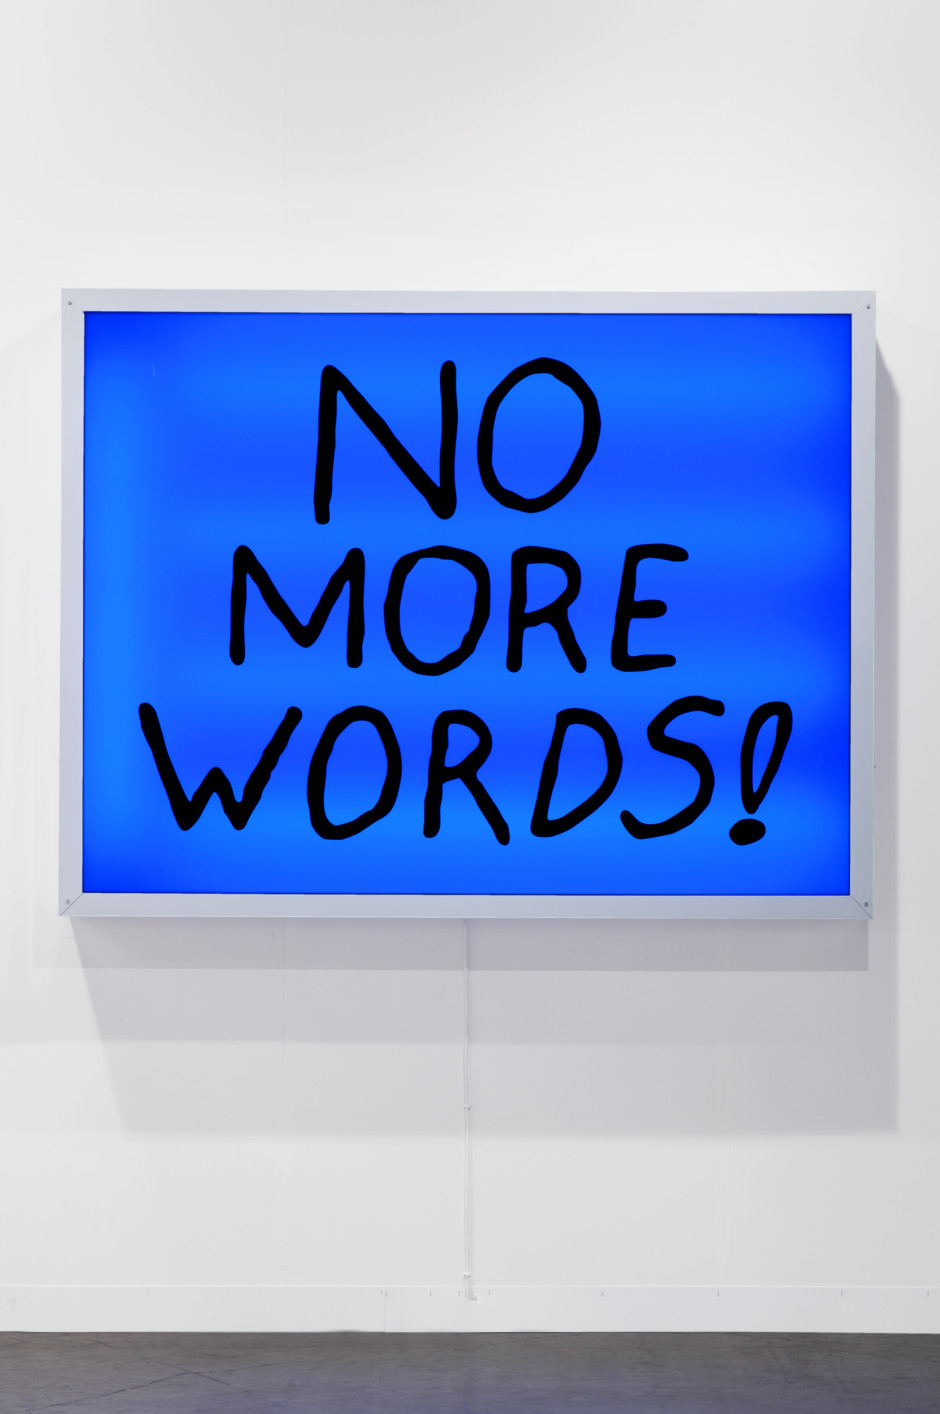 No More Words, 2013  lightbox  137.2 x 177.8 cm 54 x 70 in.